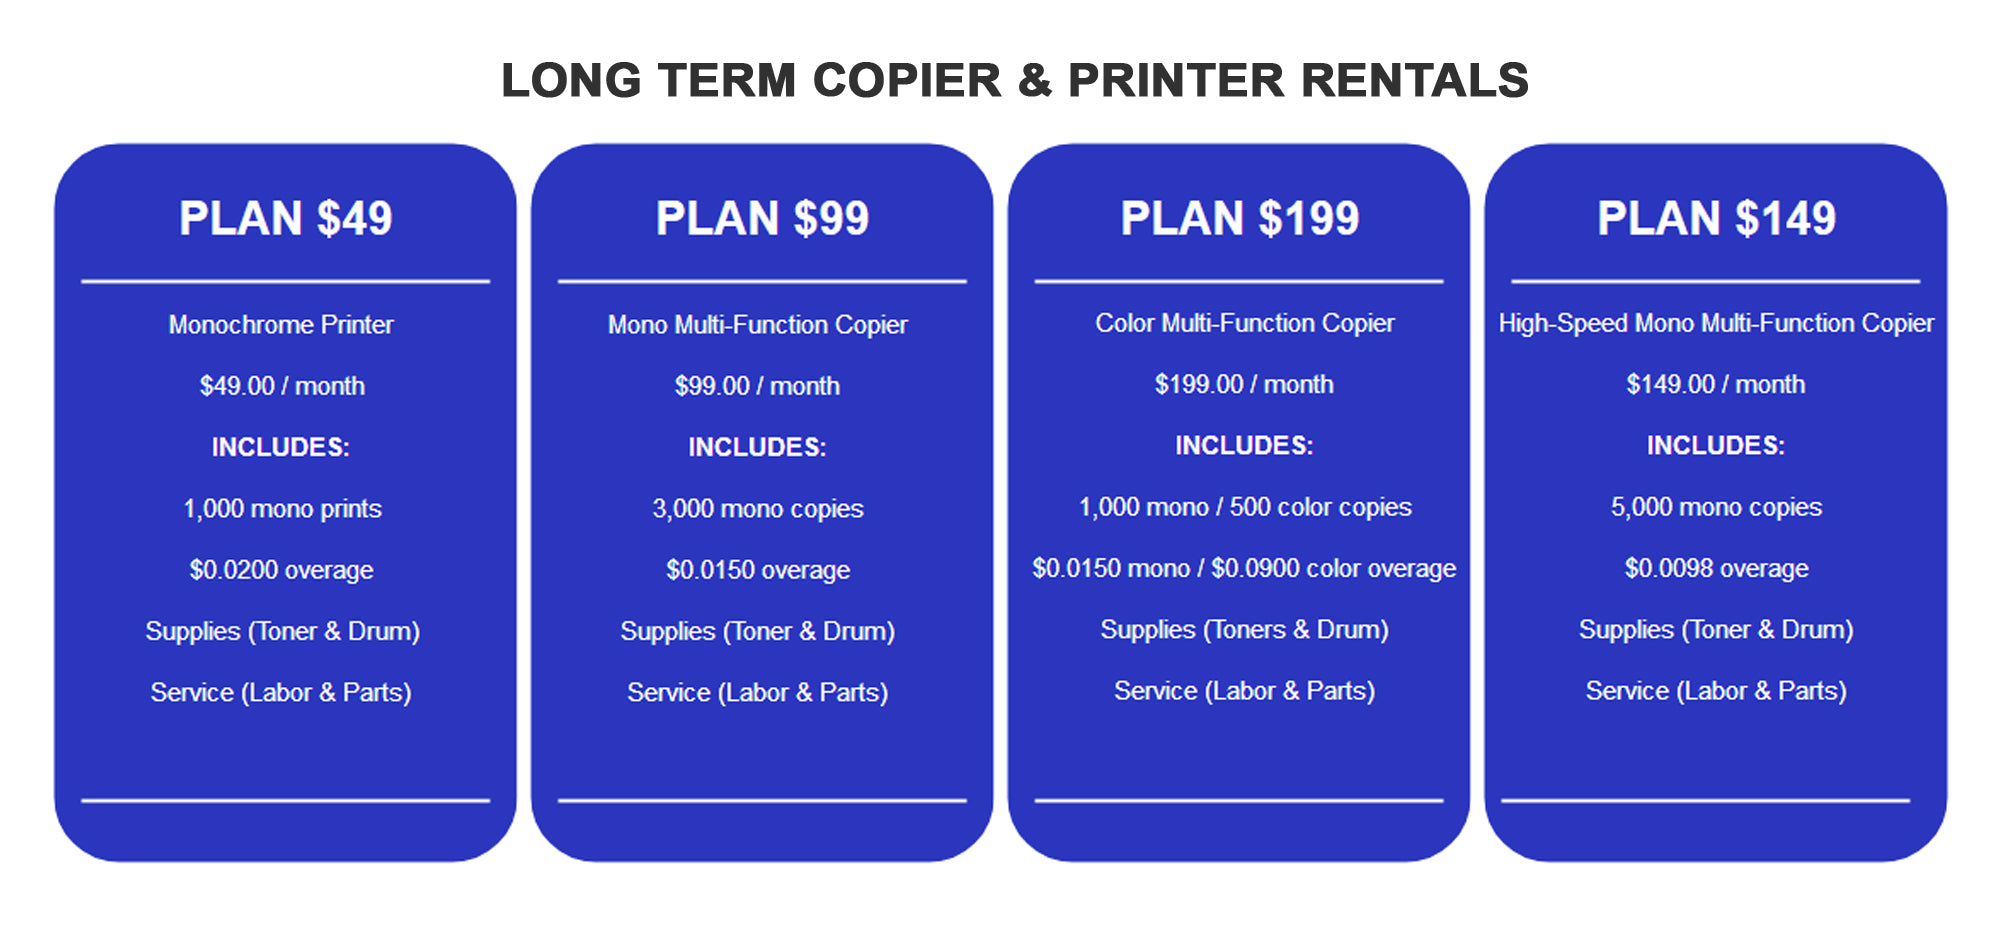 Long Term Copier and Printer Rentals in Southern California Socal